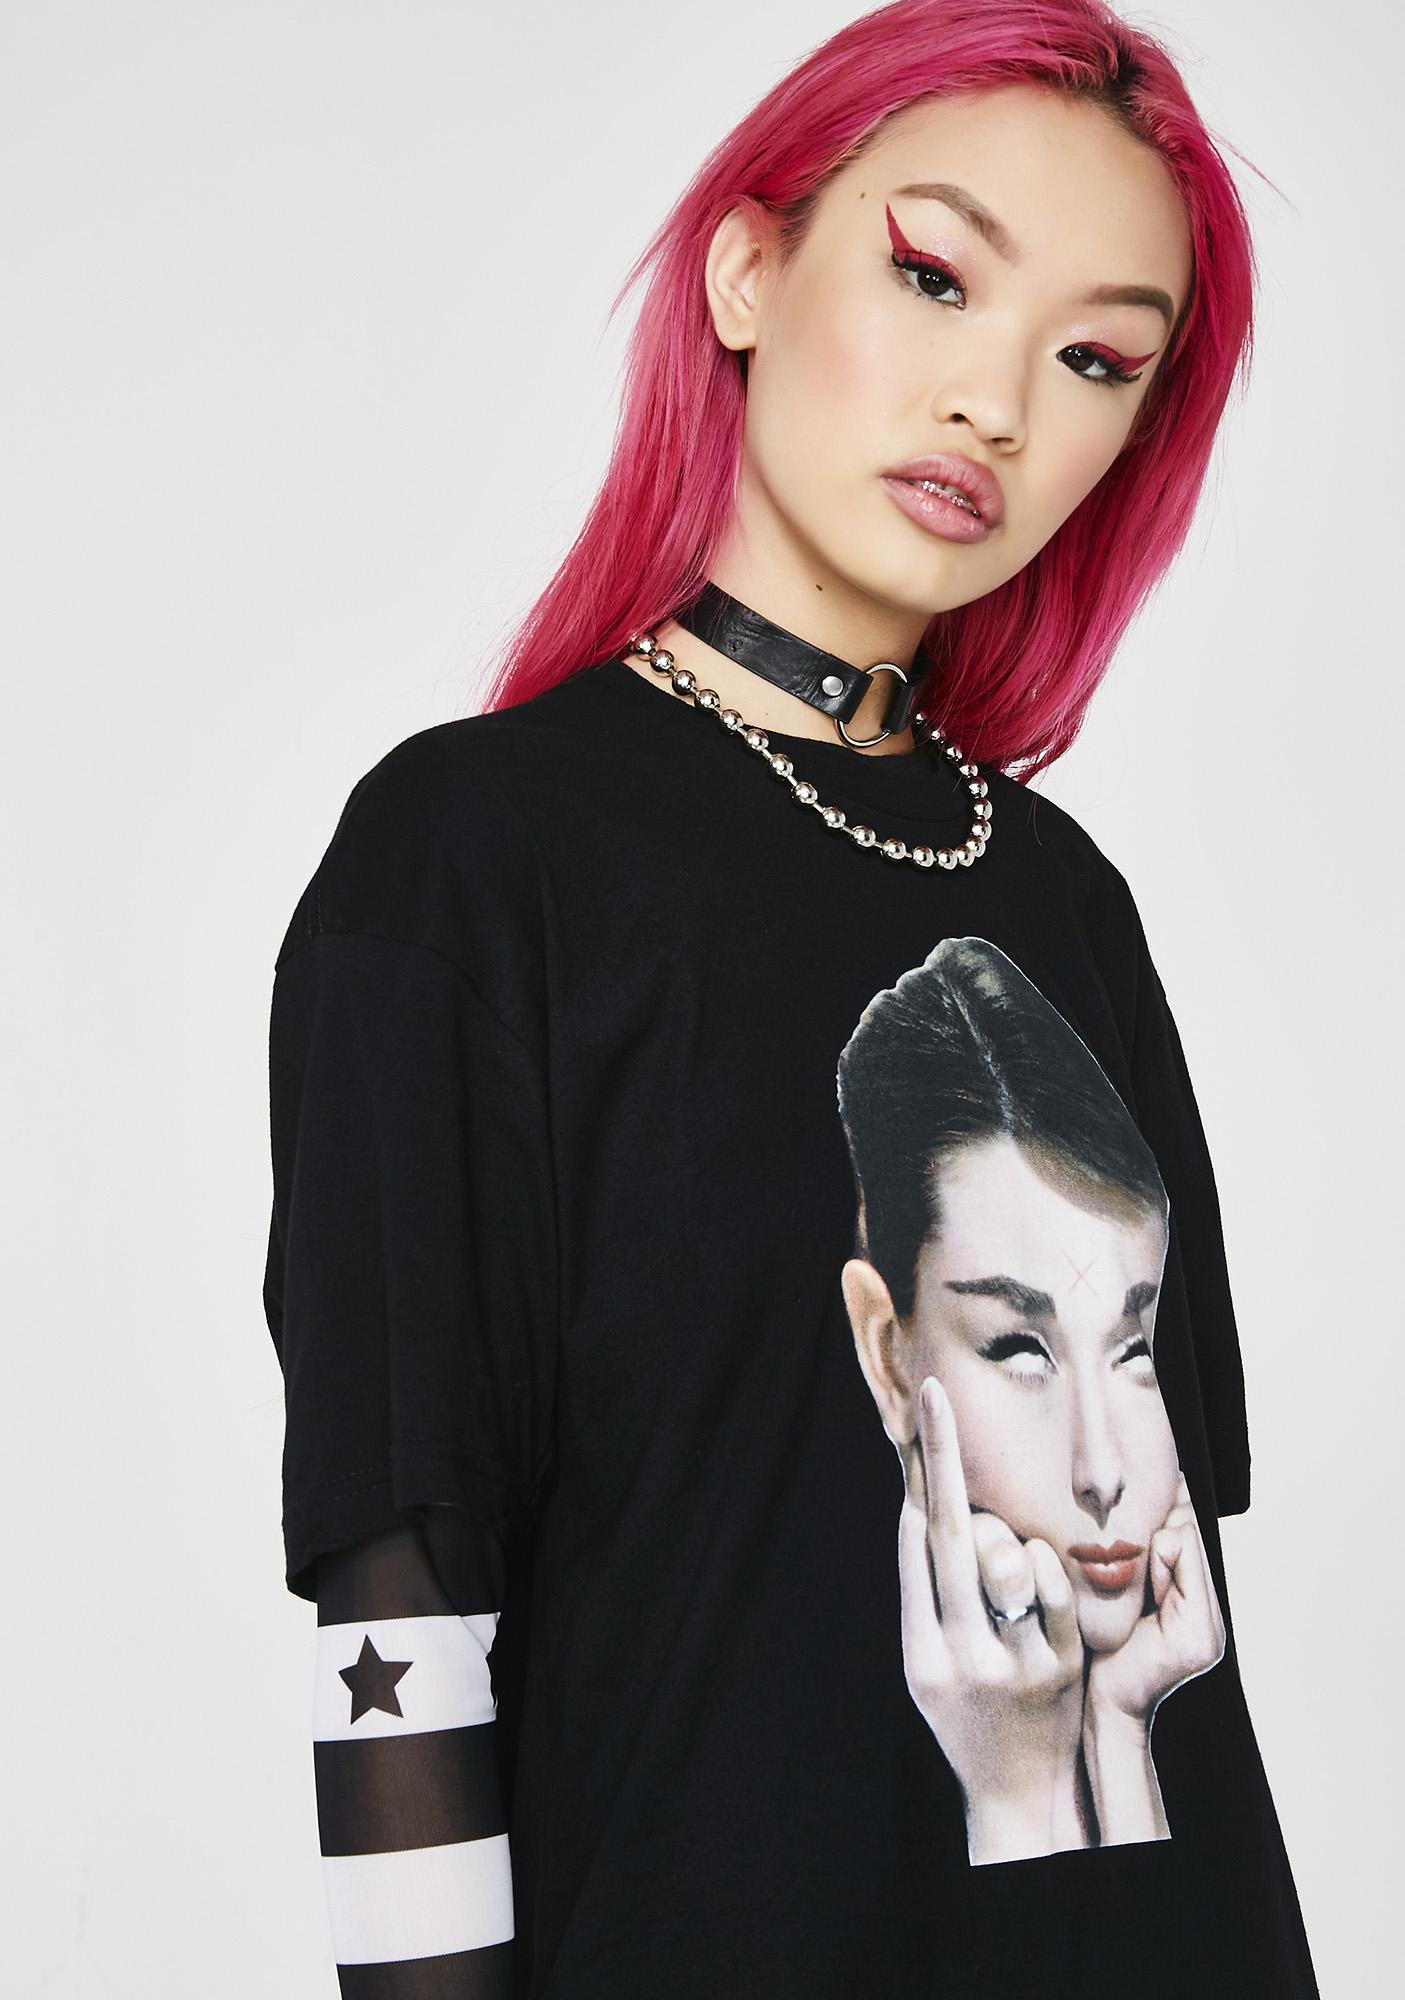 These Americans Audrey Manson Tee